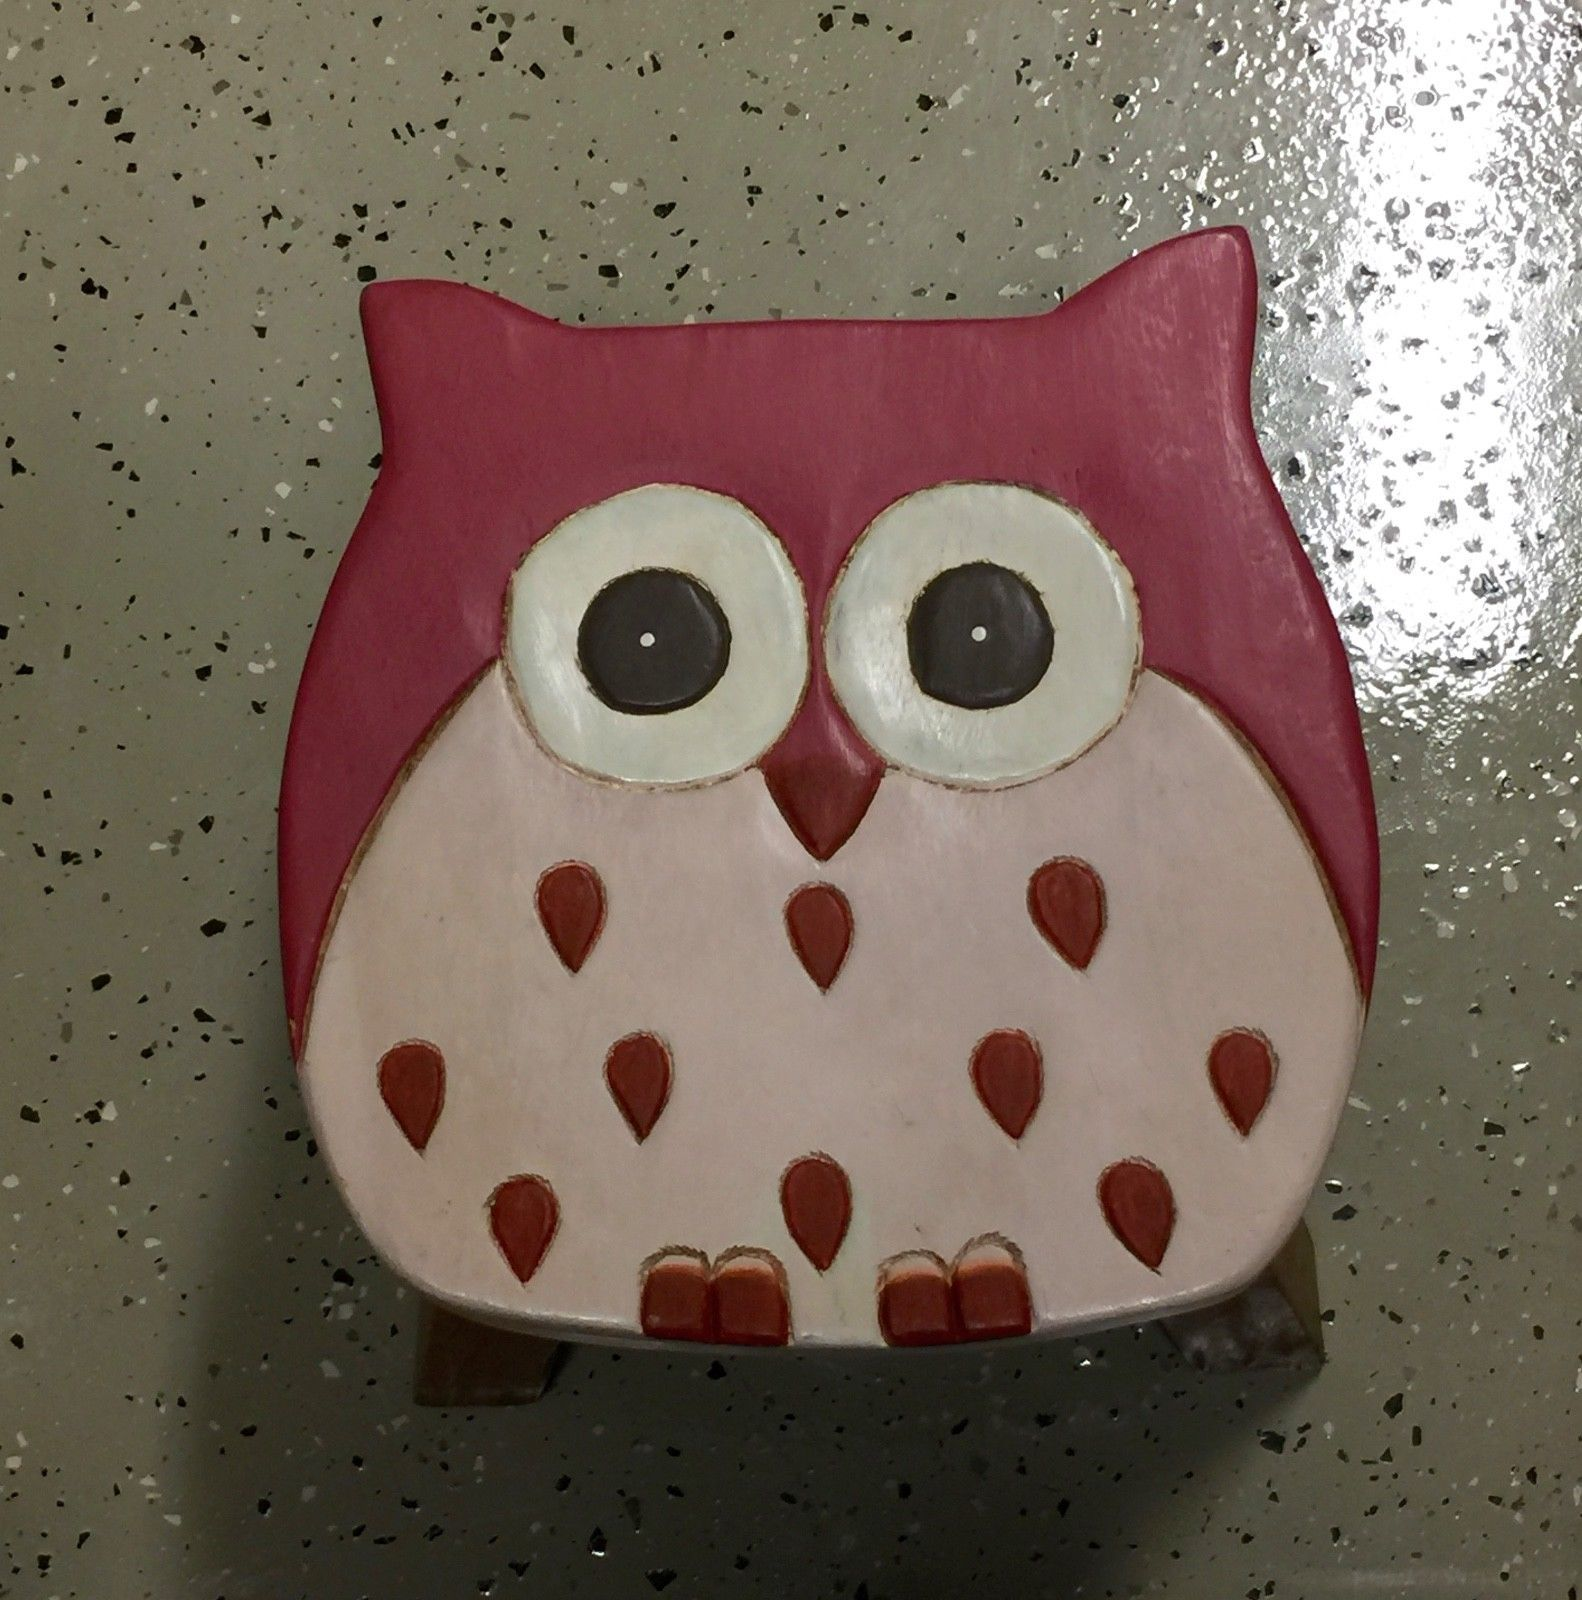 on walut in pugh as kingdom designed part stool united matt made owl uk pink shop of by crowdyhouse home